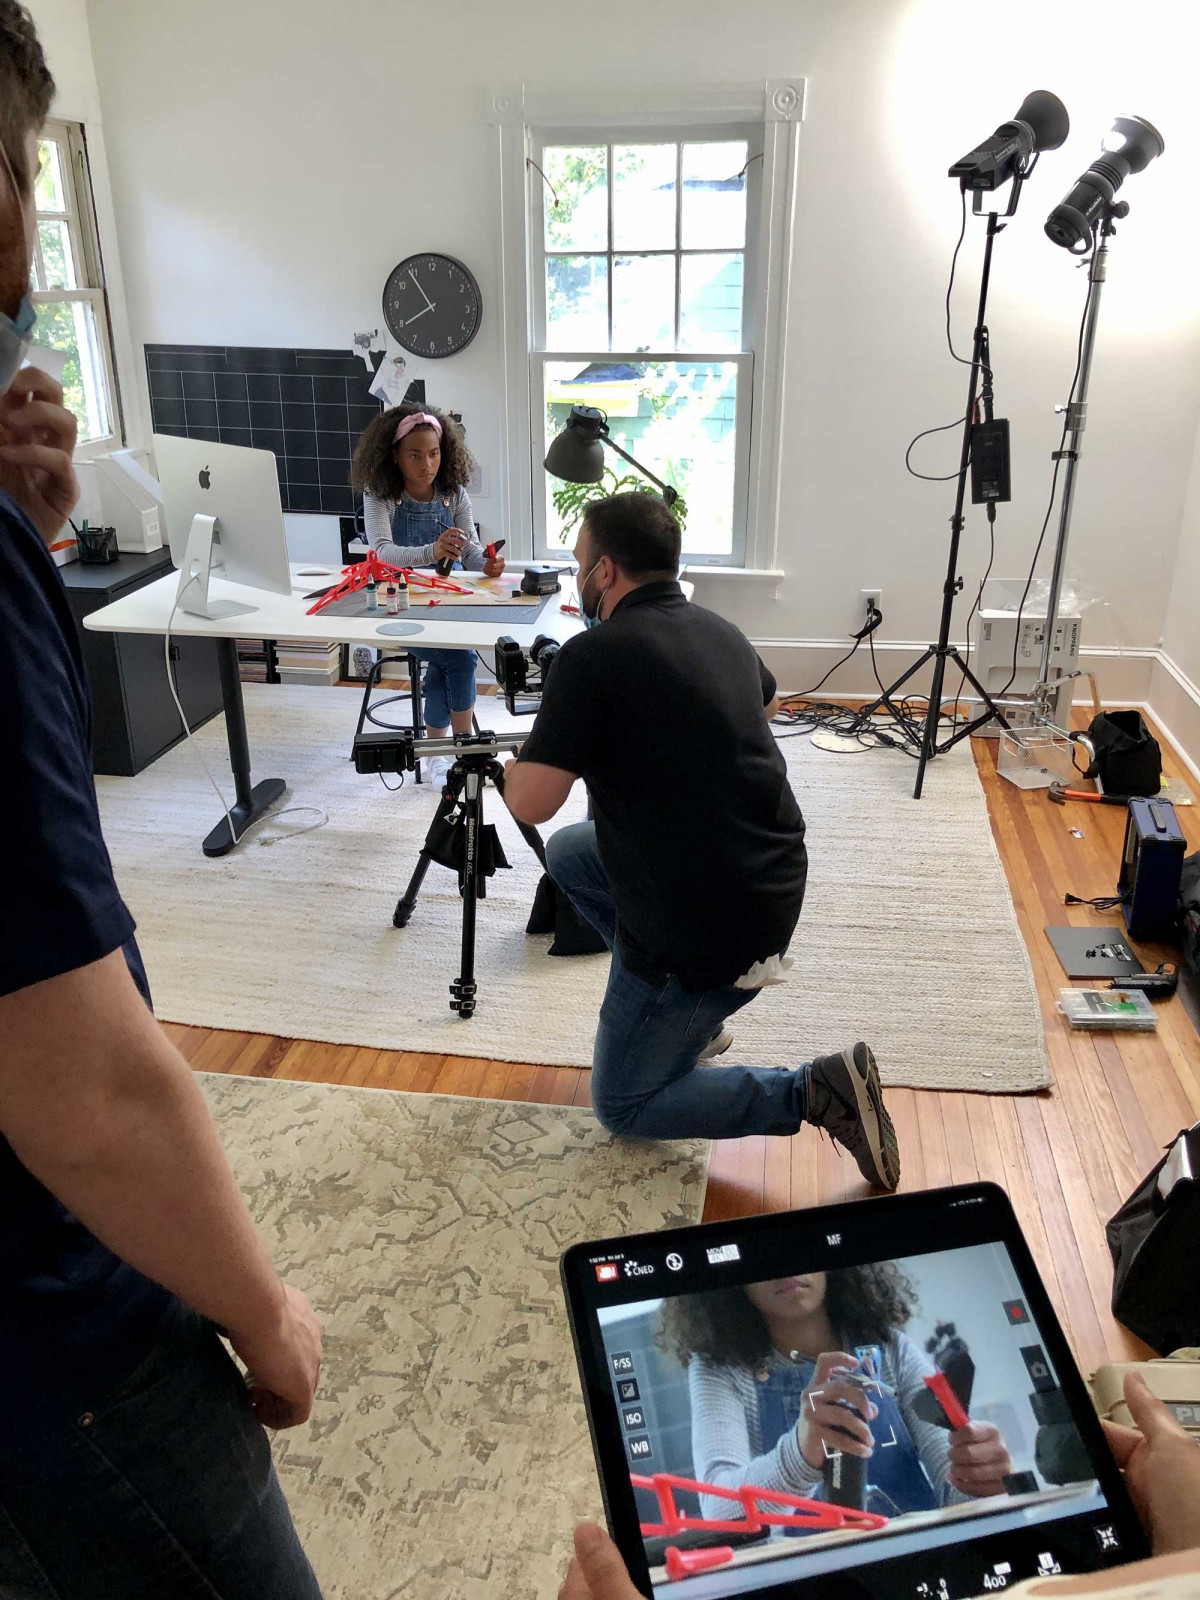 Salt Paper Studio commercial photography production crew working on a lifestyle product photography shoot for WORX tools